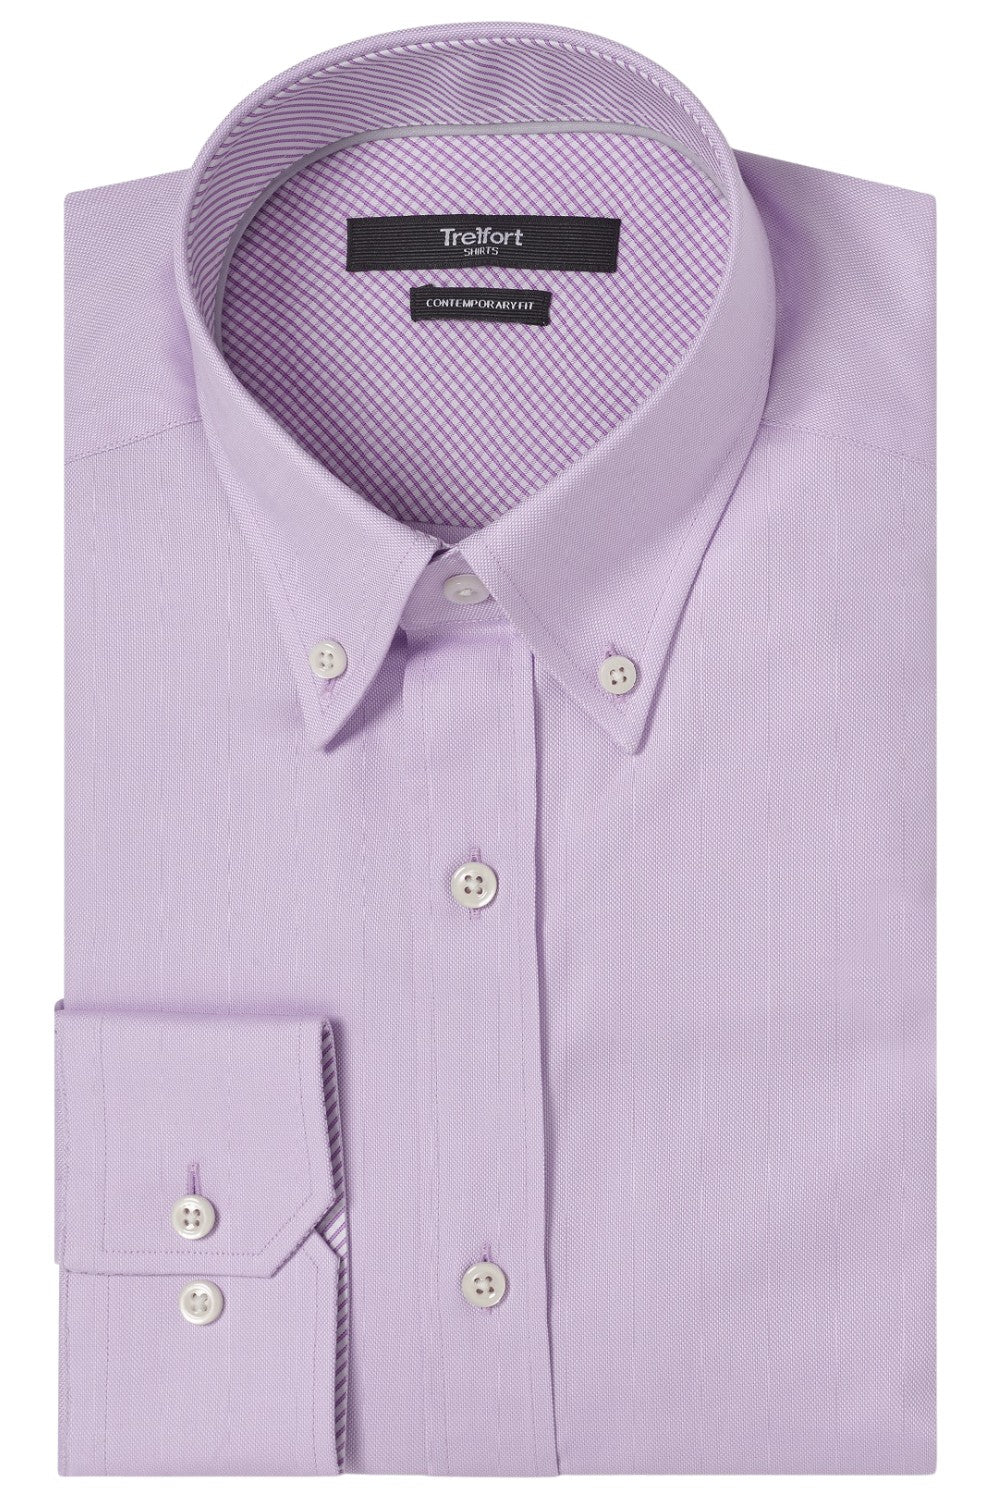 THE FRANKLIN SHIRT (PINK)